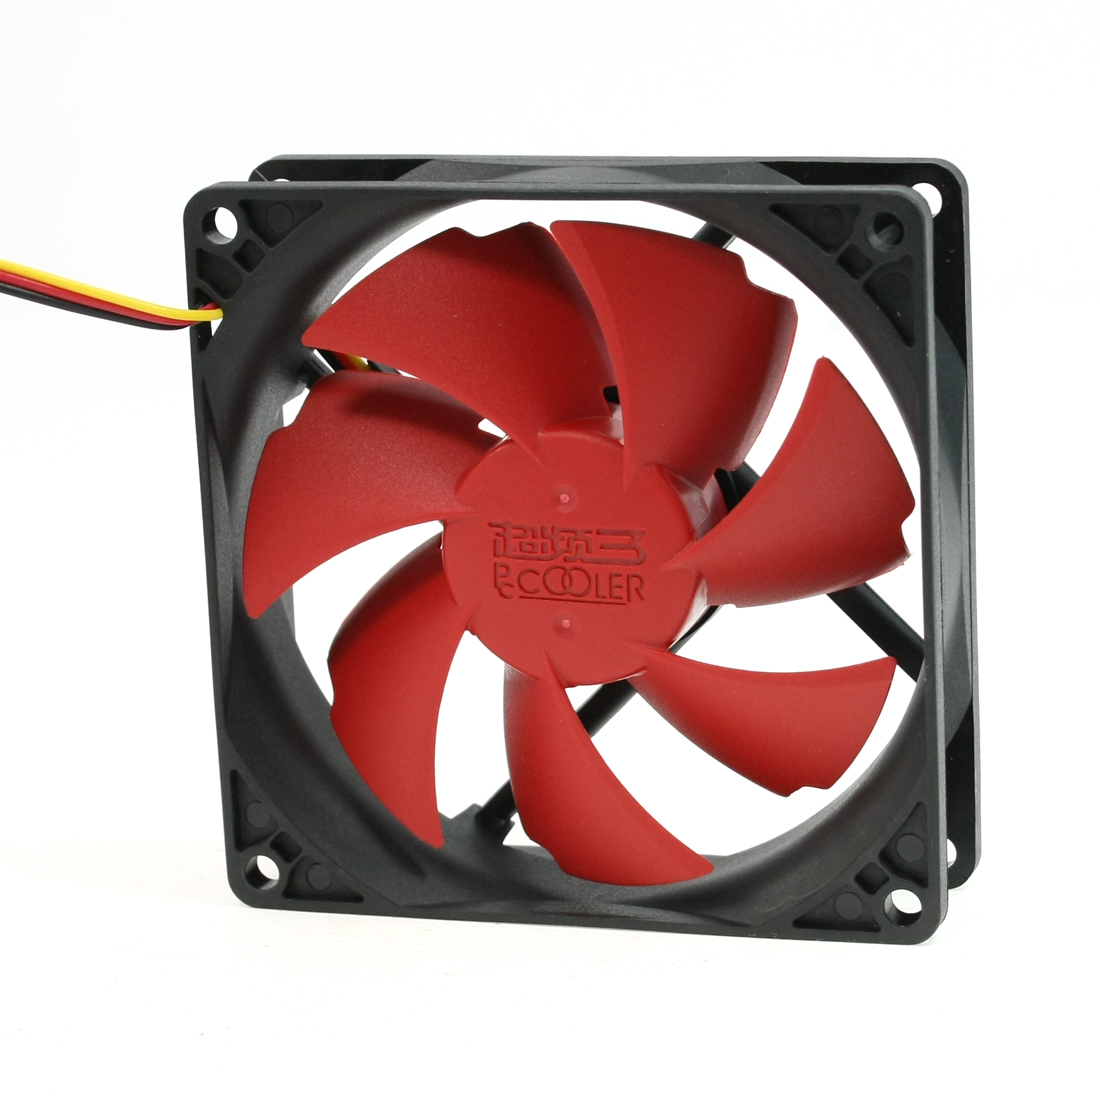 90mm x 25mm Hydraumatic DC 12V Computer Case CPU Cooler Cooling Fan